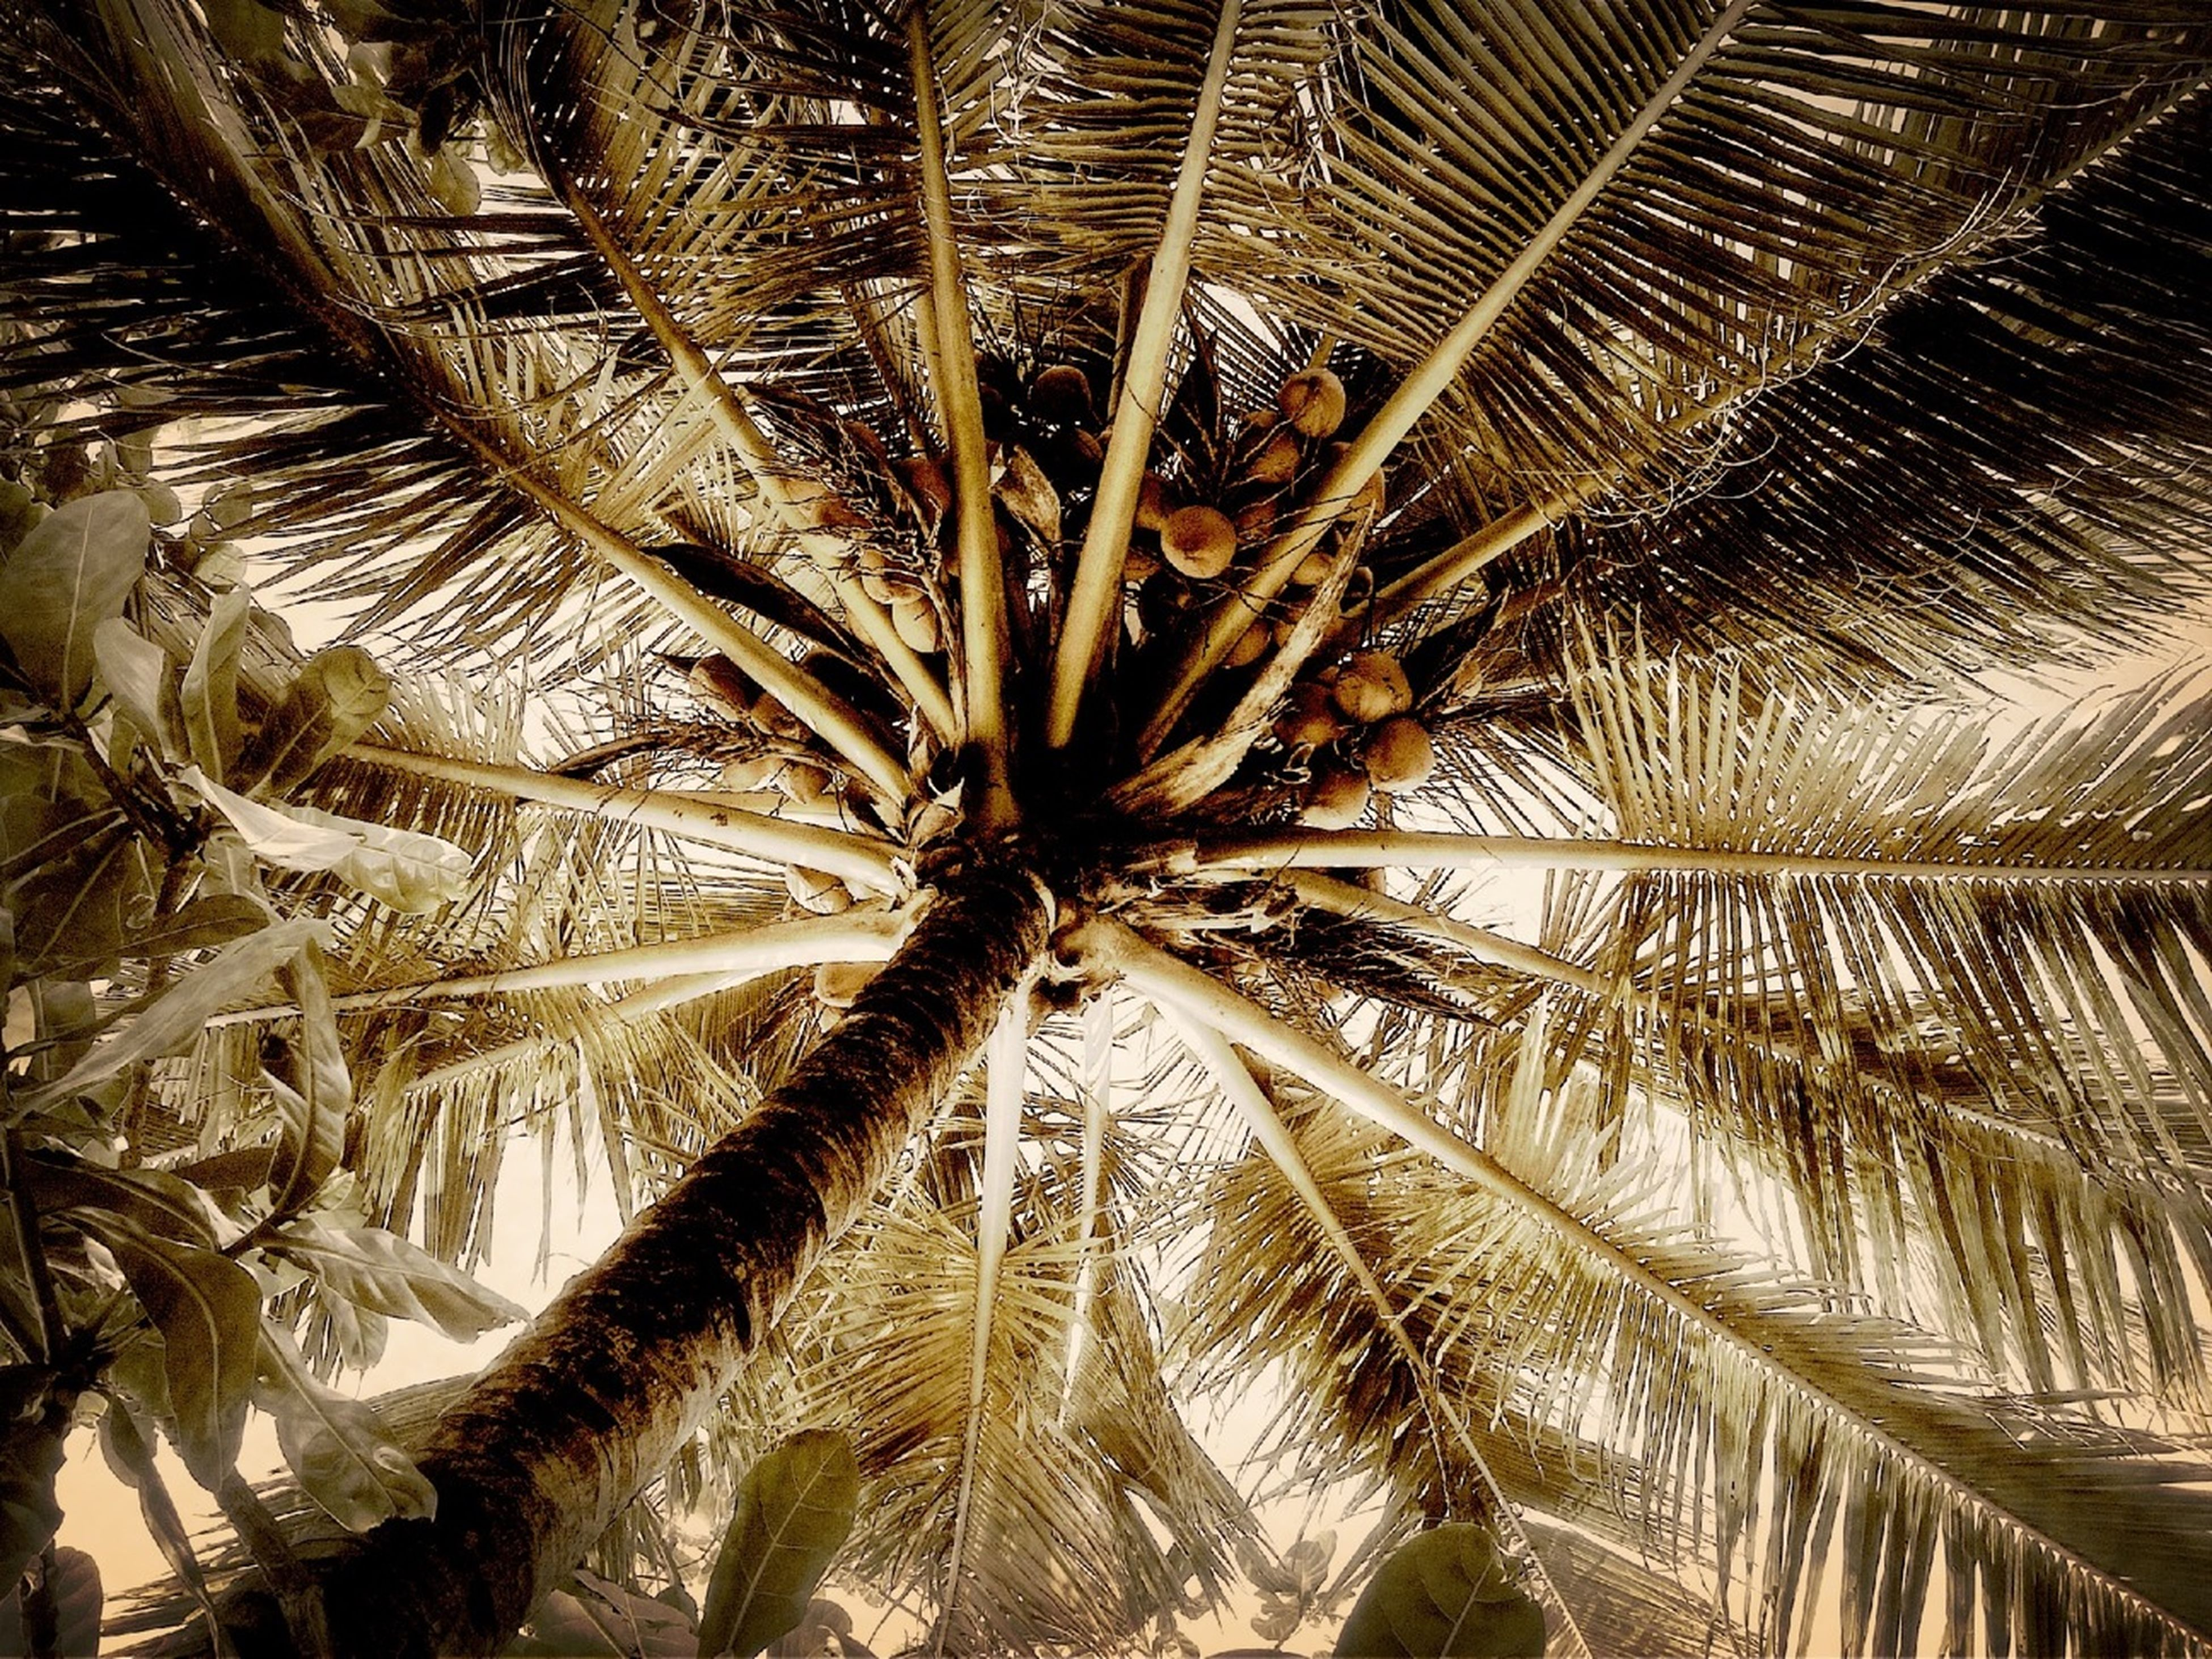 tree, low angle view, palm tree, branch, tree trunk, nature, growth, palm leaf, day, backgrounds, full frame, tranquility, outdoors, no people, beauty in nature, pattern, close-up, leaf, natural pattern, sky